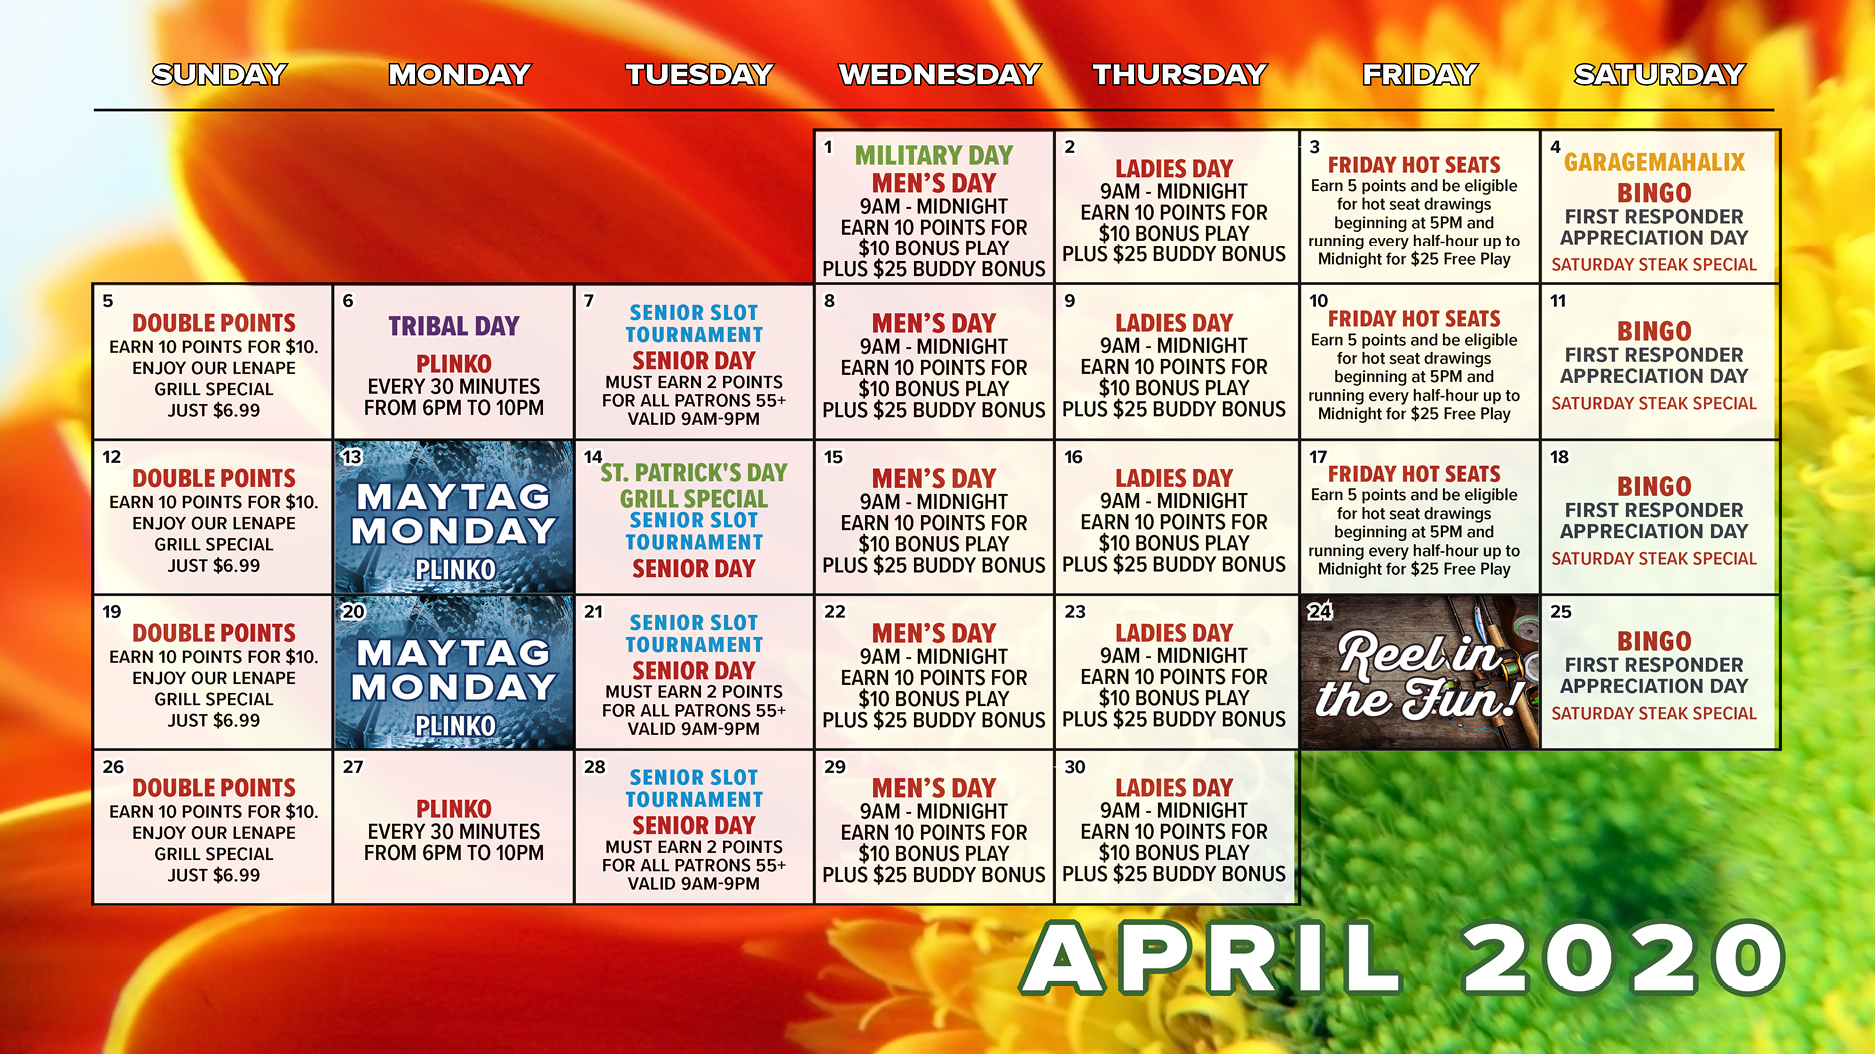 Rivers casino april promotions this week